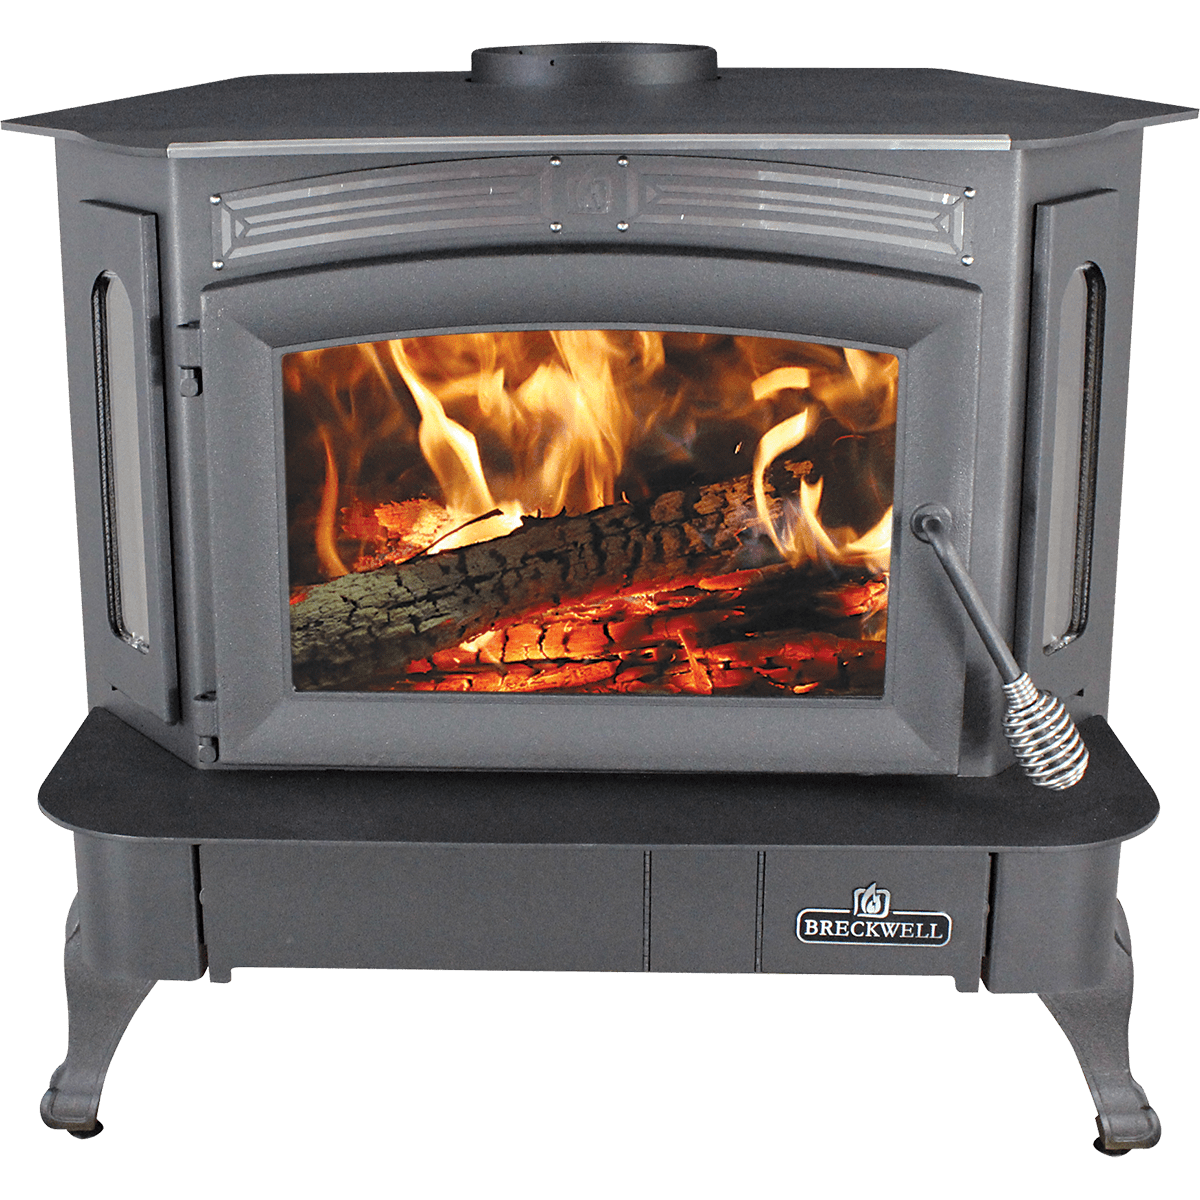 Breckwell Sw940 Wood Stove - Legs, Pedestal, Or Insert Options